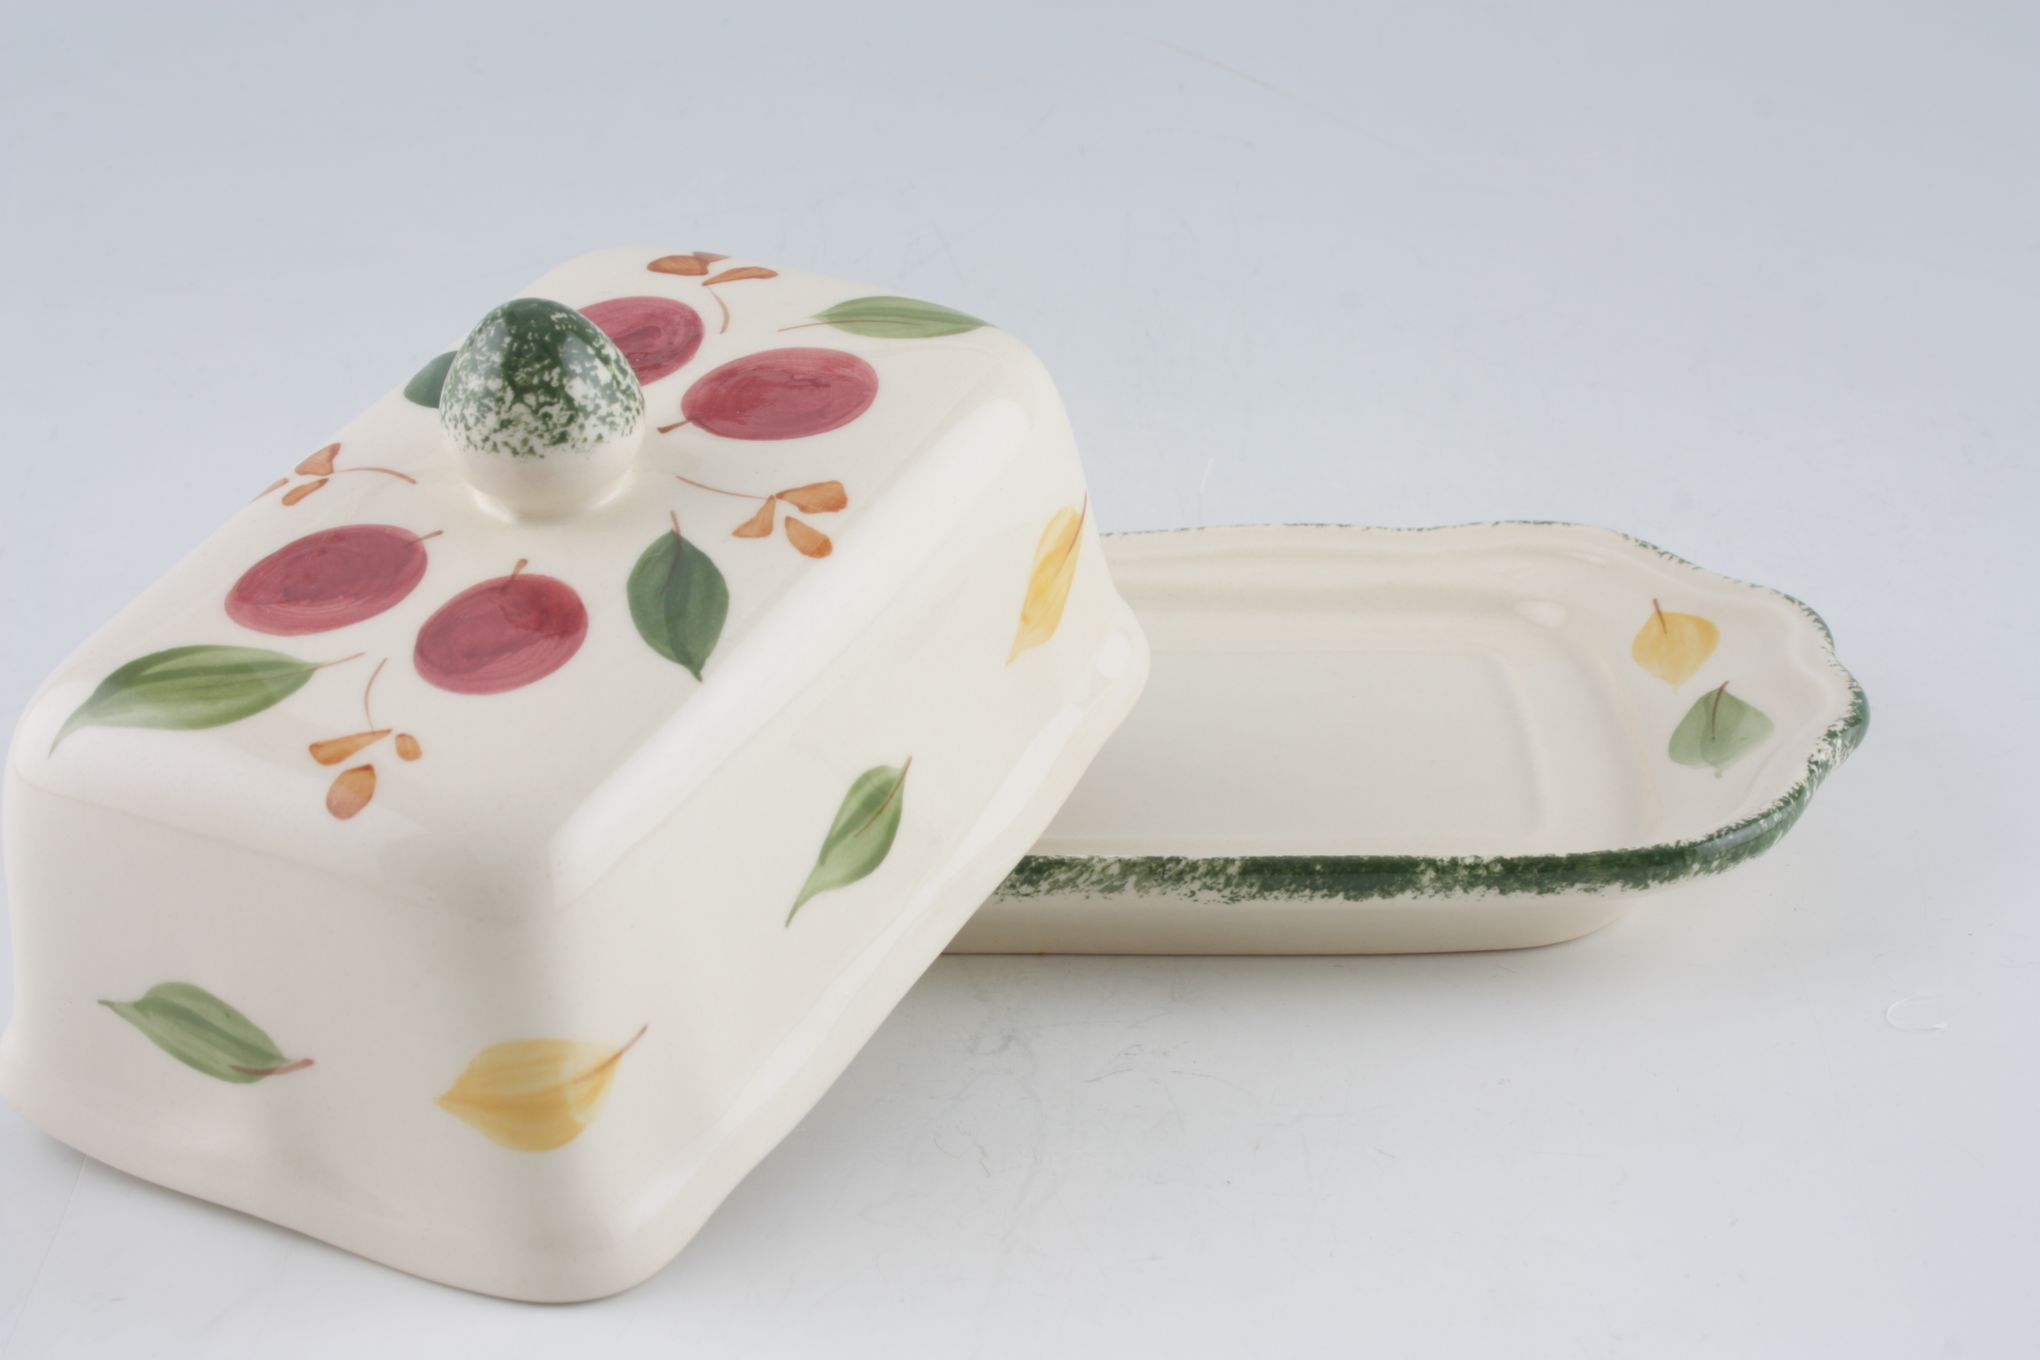 Marks & Spencer Damson Butter Dish + Lid thumb 2